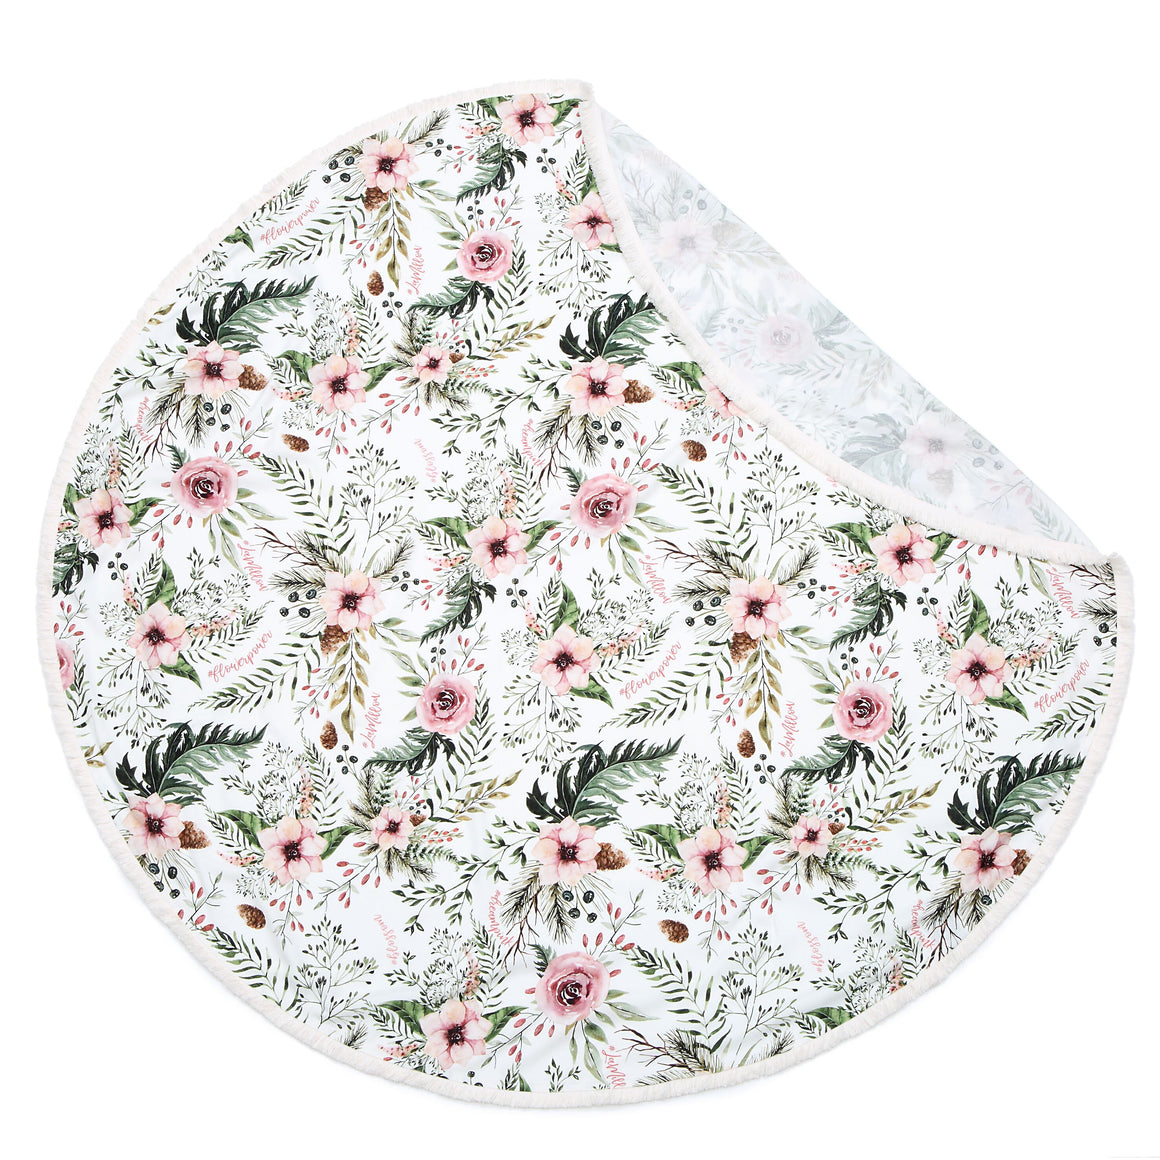 BAMBOO ROUND SWADDLE KING SIZE light summer blanket | Wild Blossom